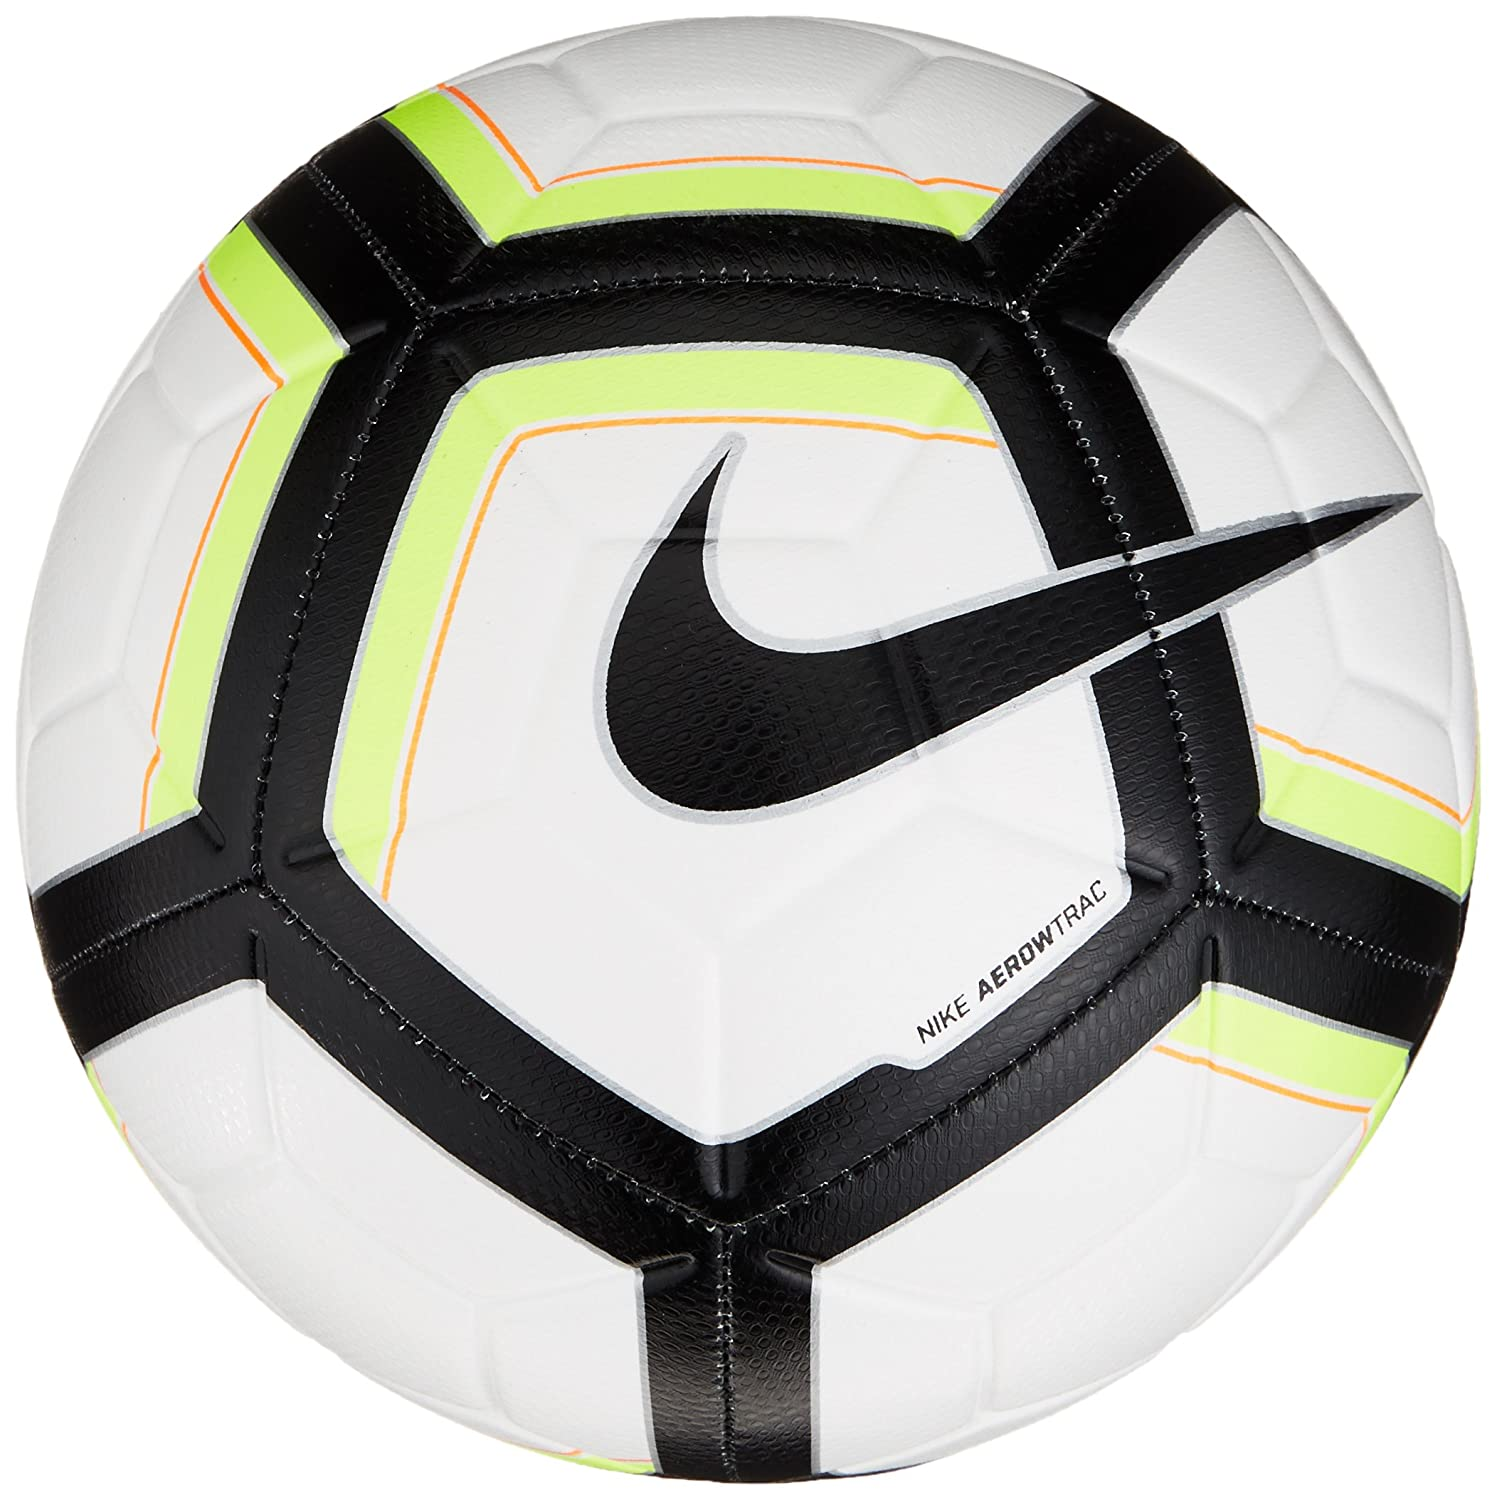 bdc11bdd897 Amazon.com : NIKE Strike Football Soccer Ball : Sports & Outdoors